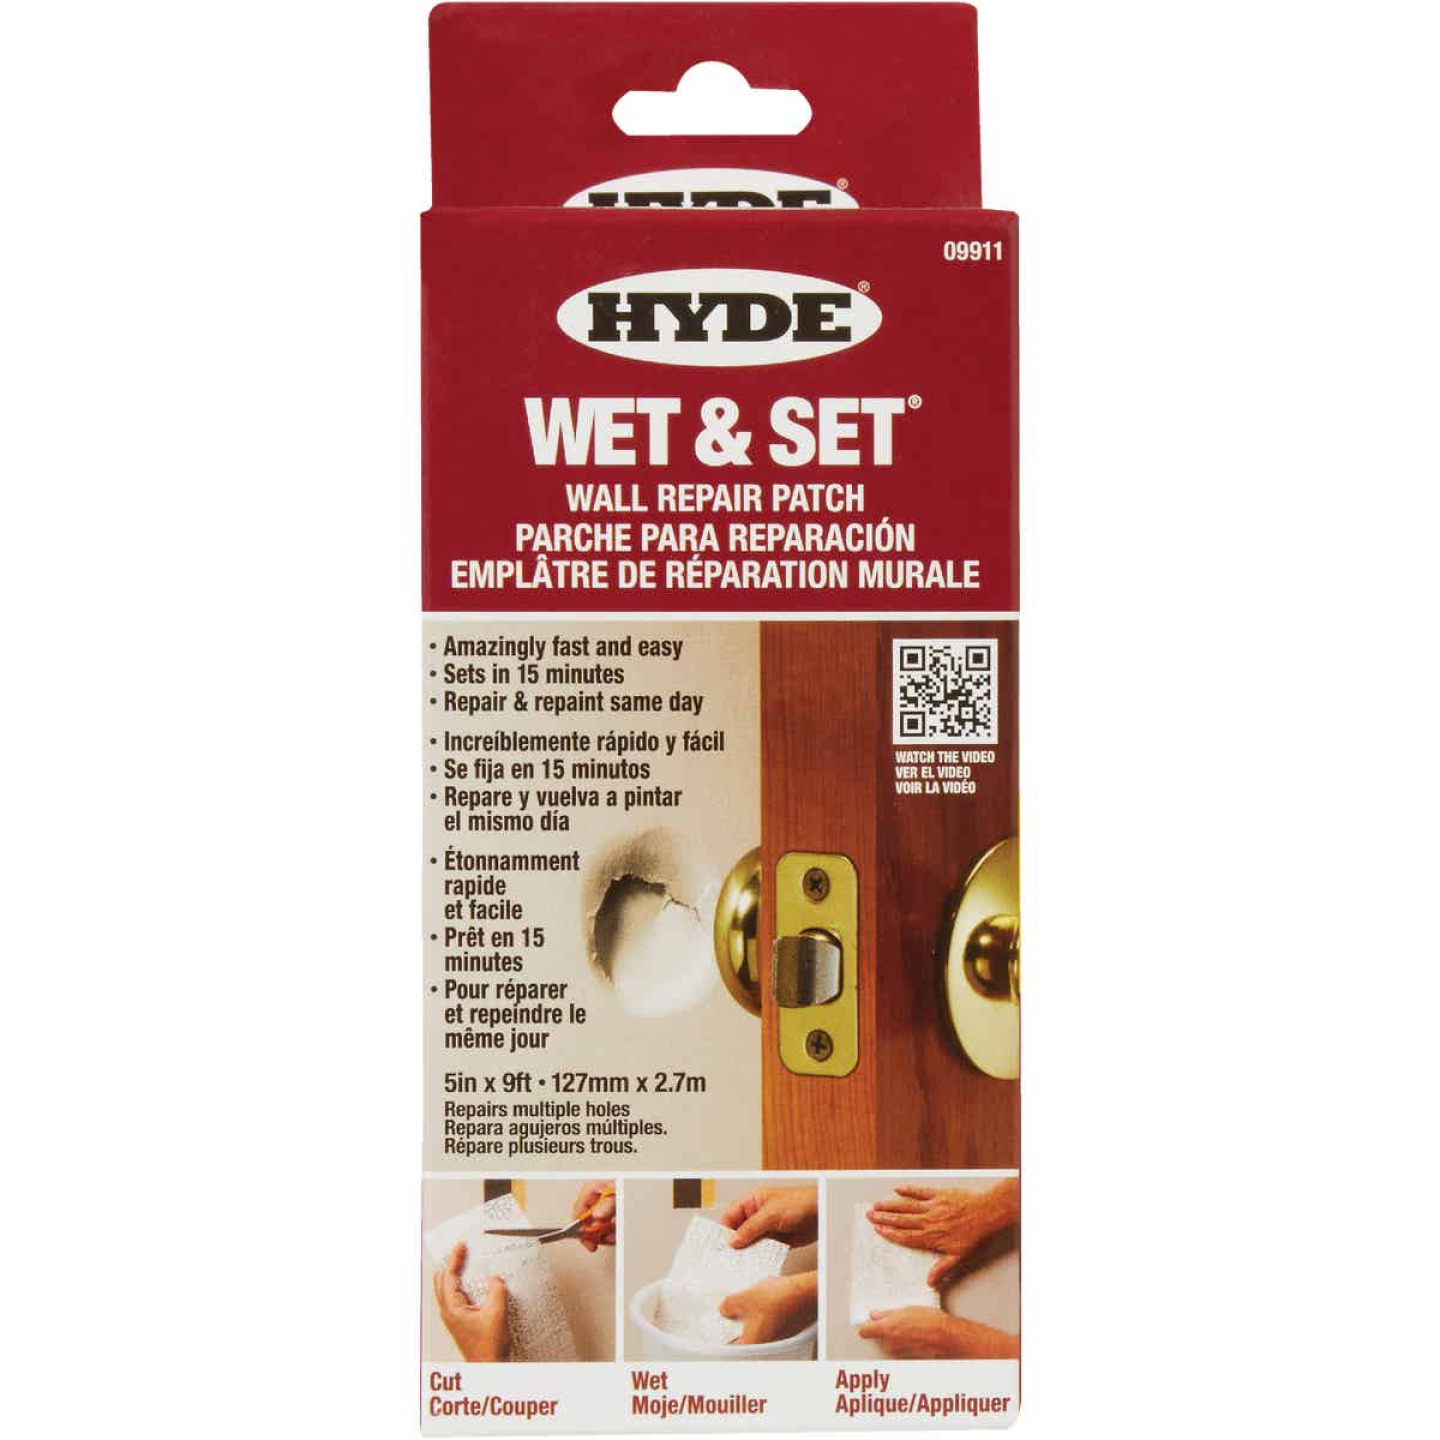 Hyde Wet & Set 5 In. x 9 Ft. Wall & Ceiling Drywall Patch Image 2